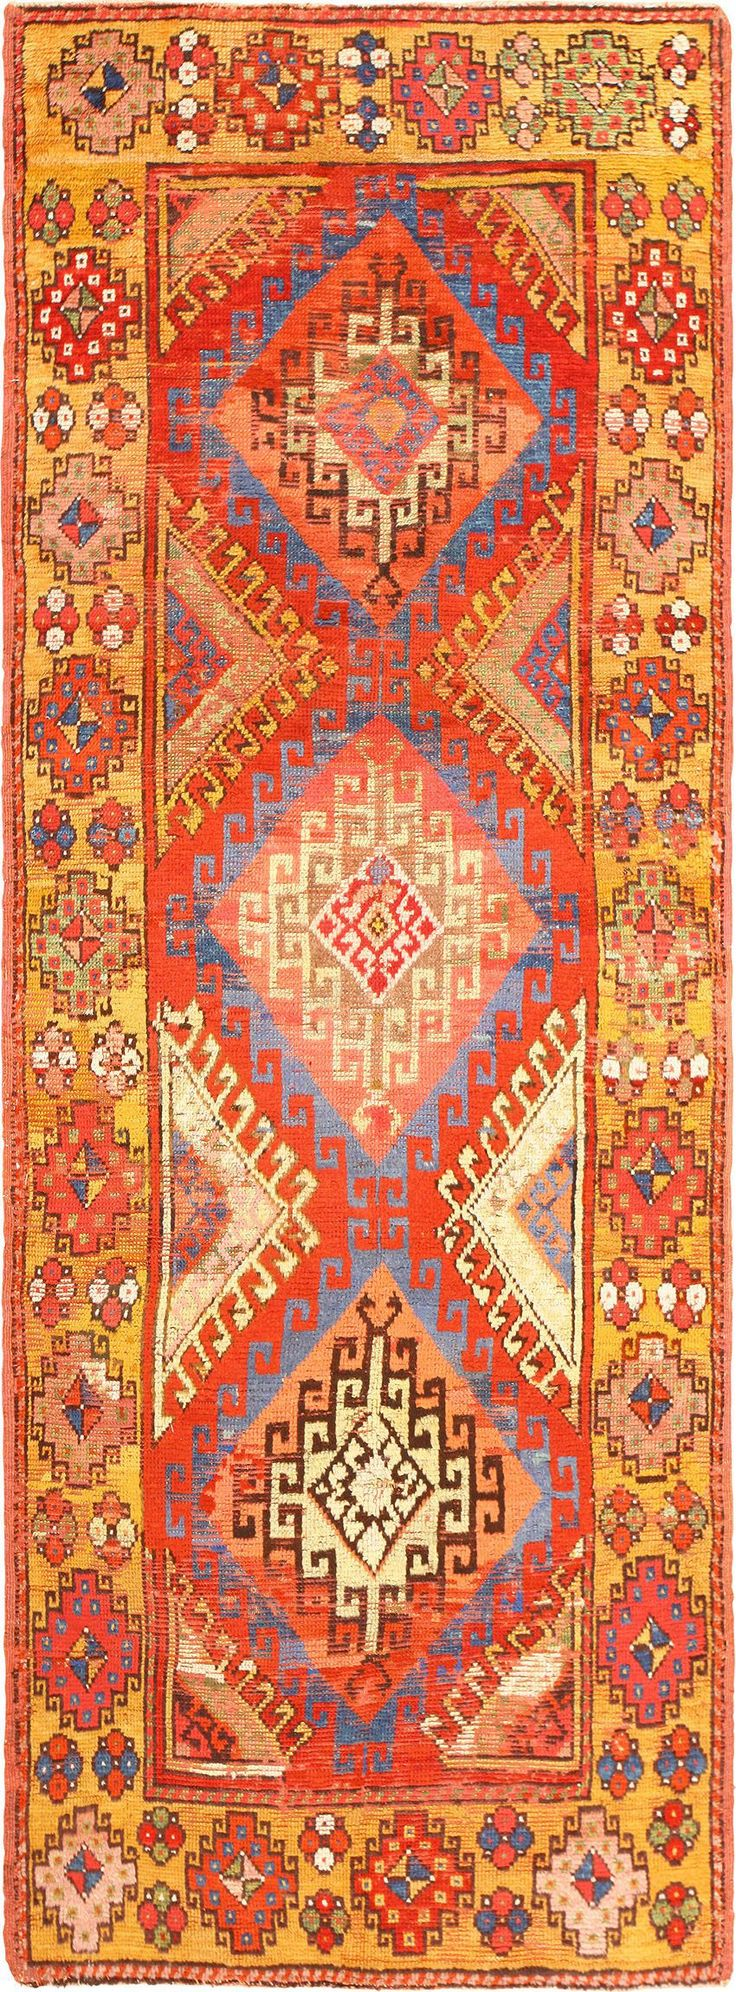 on carpets turkish patterns pinterest antique rugs images vintage hewittgail oriental rug kazak best